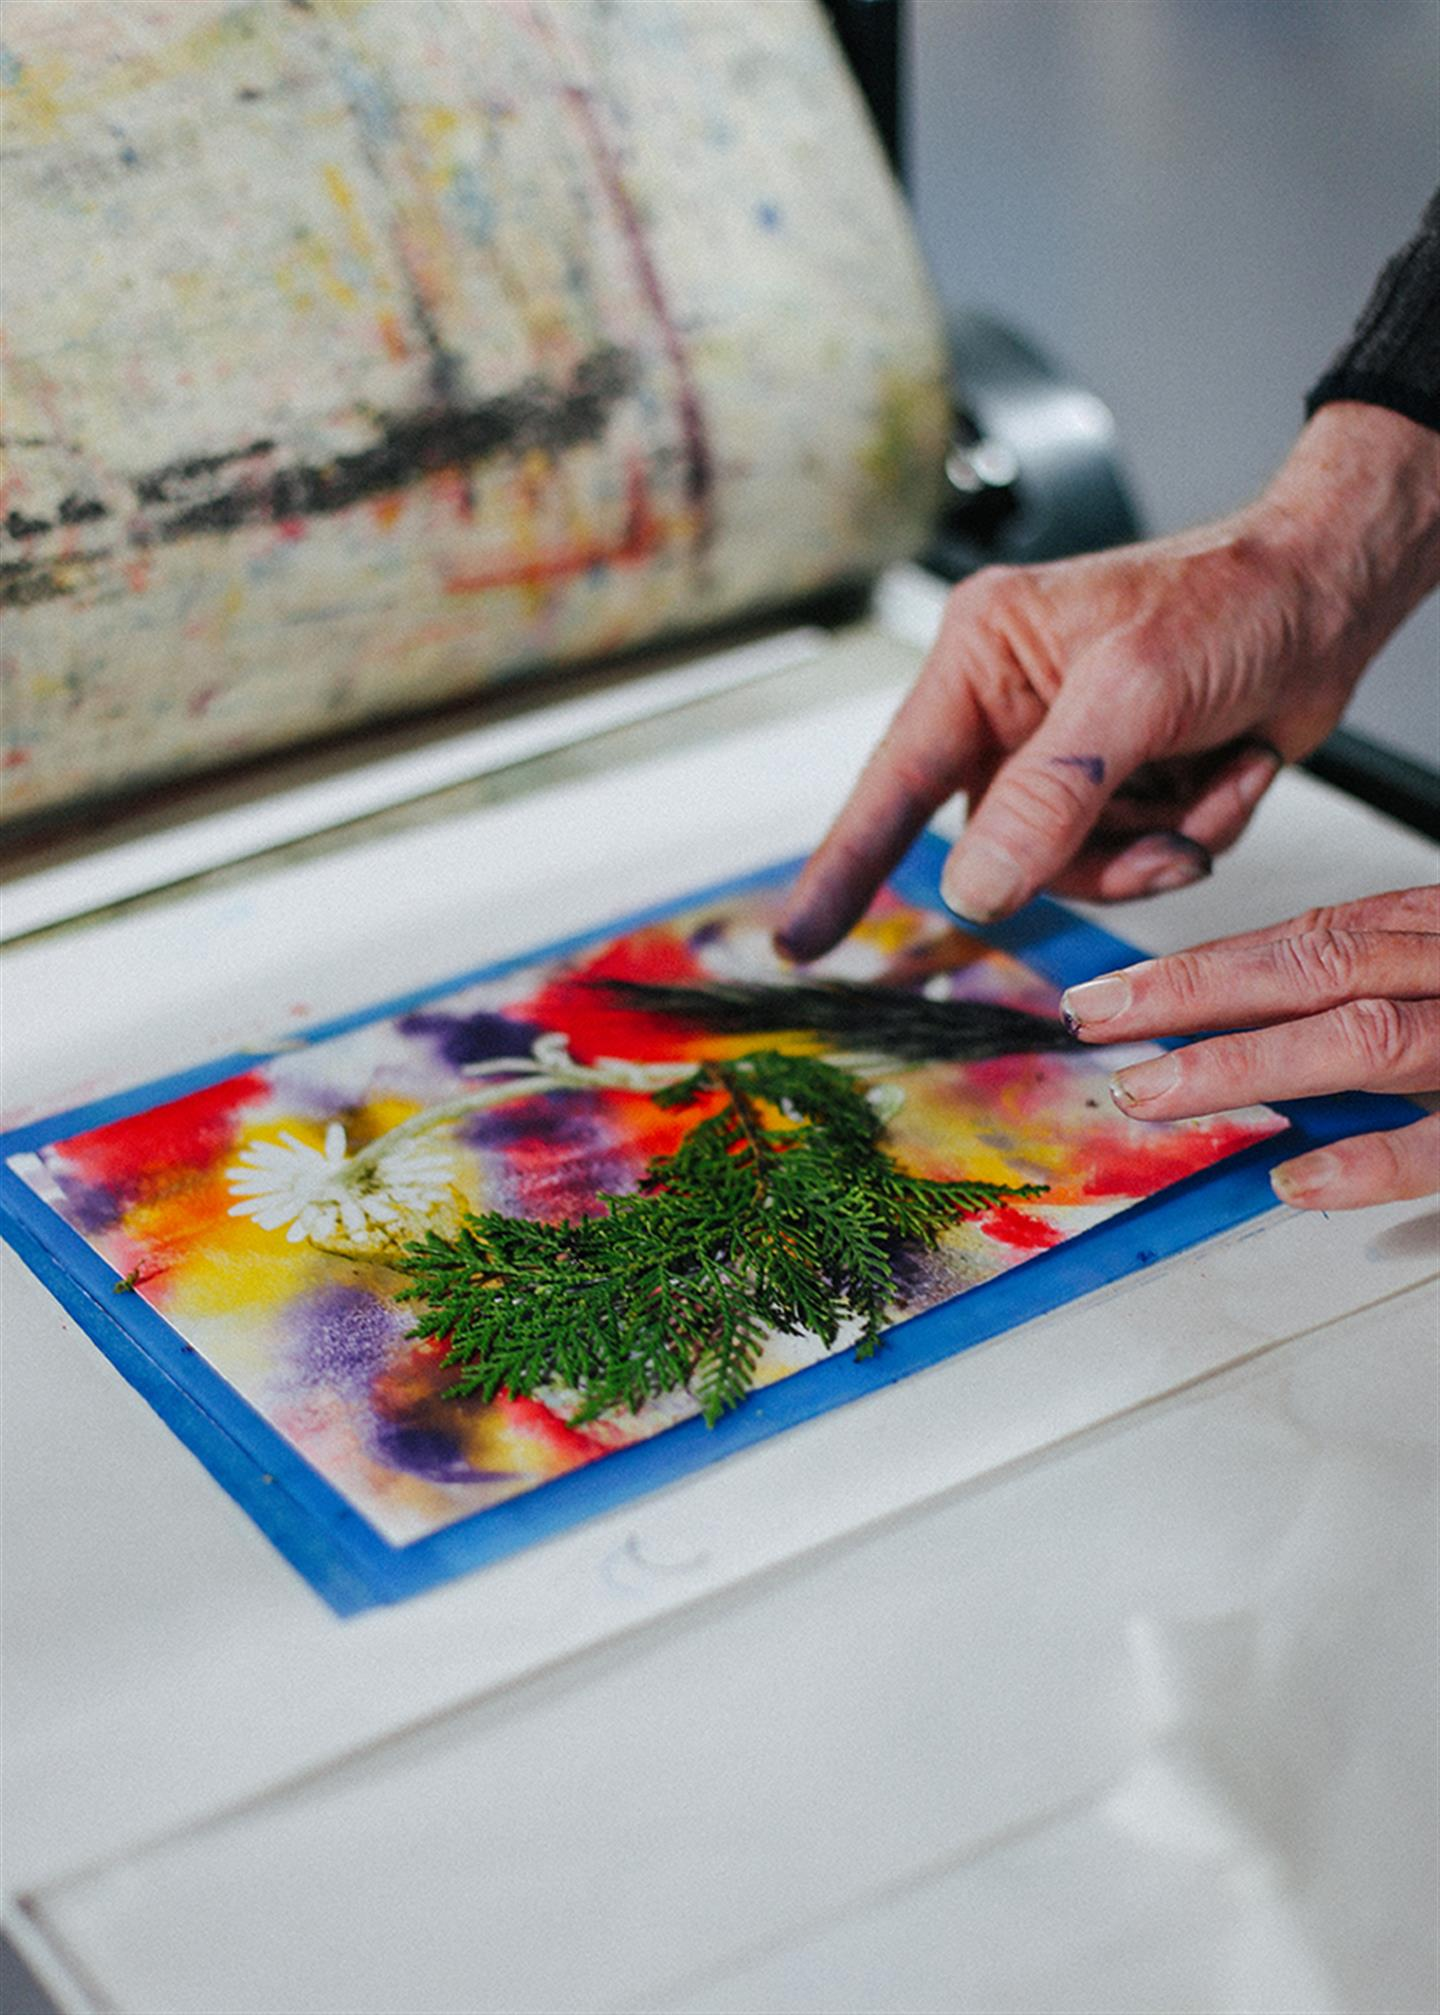 MONOPRINTING FOR WELLBEING